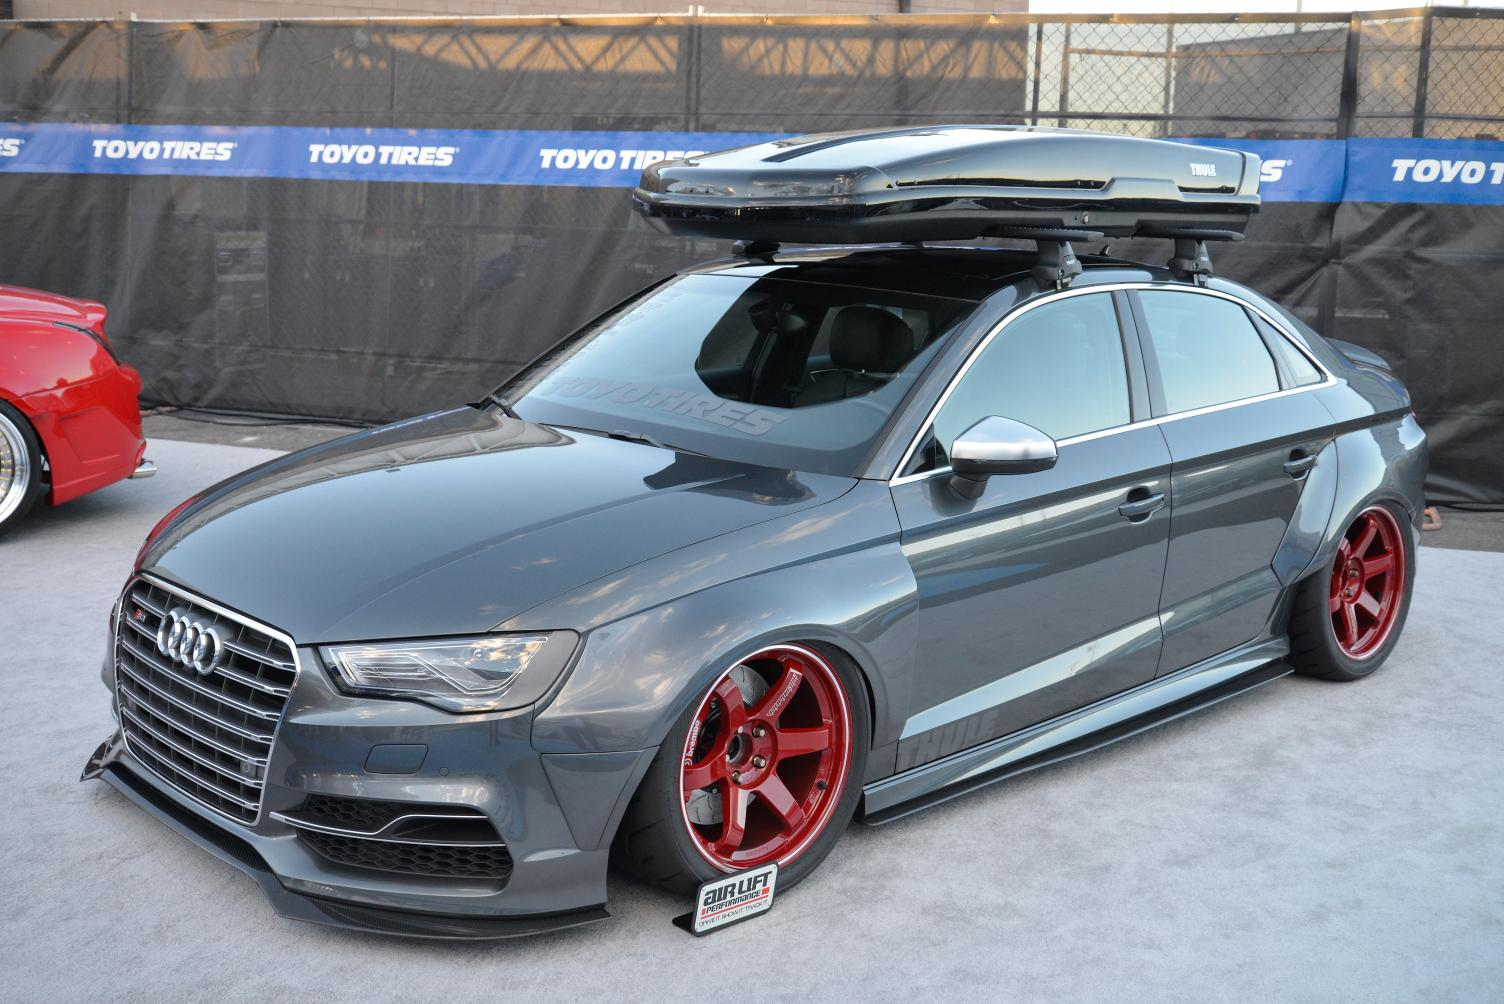 Audi S3 Sedan Widebody And Slammed E Golf Revealed By